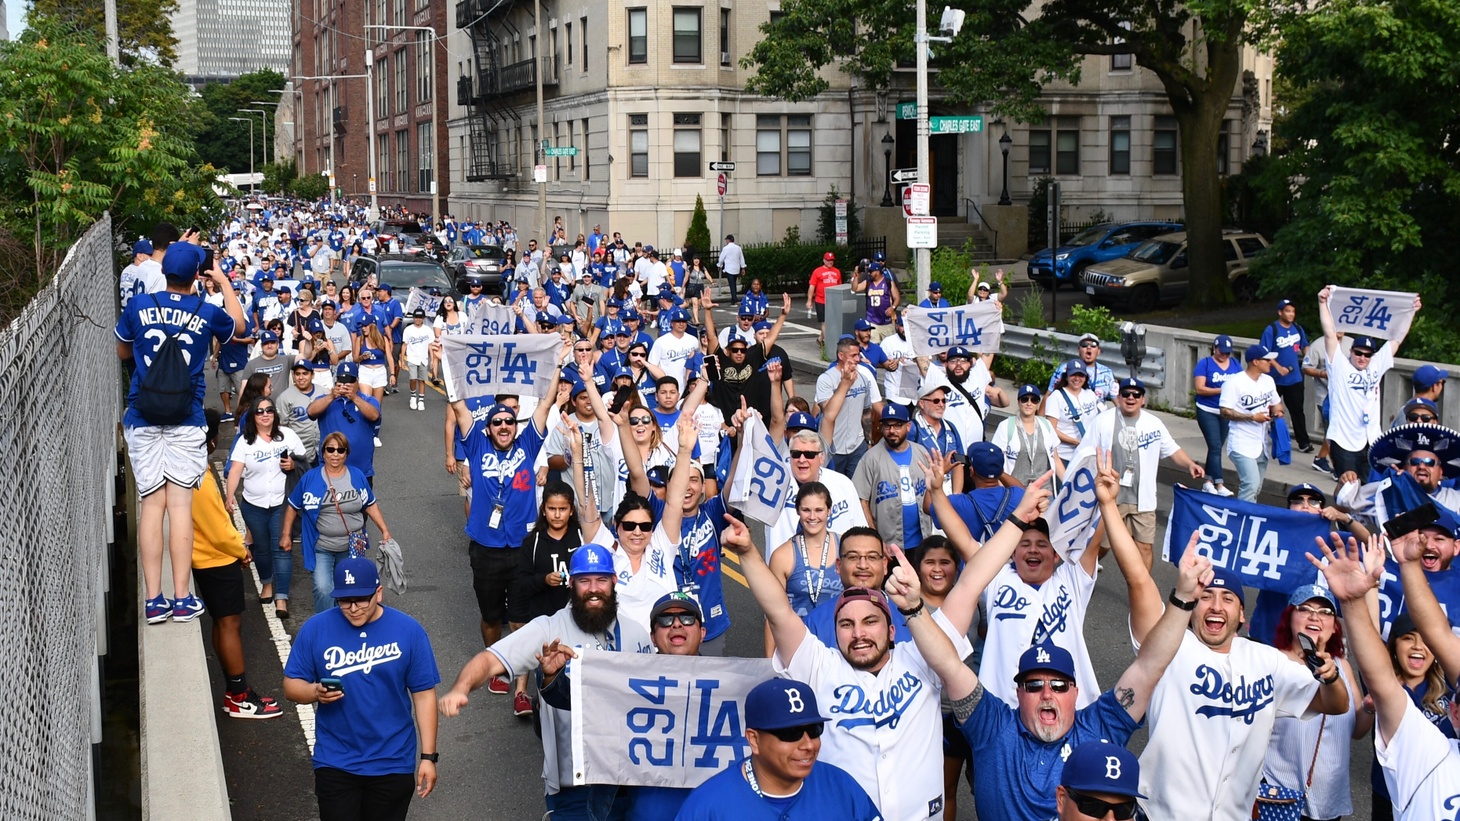 Pantone 294 group marching to the stadium in Washington D.C.